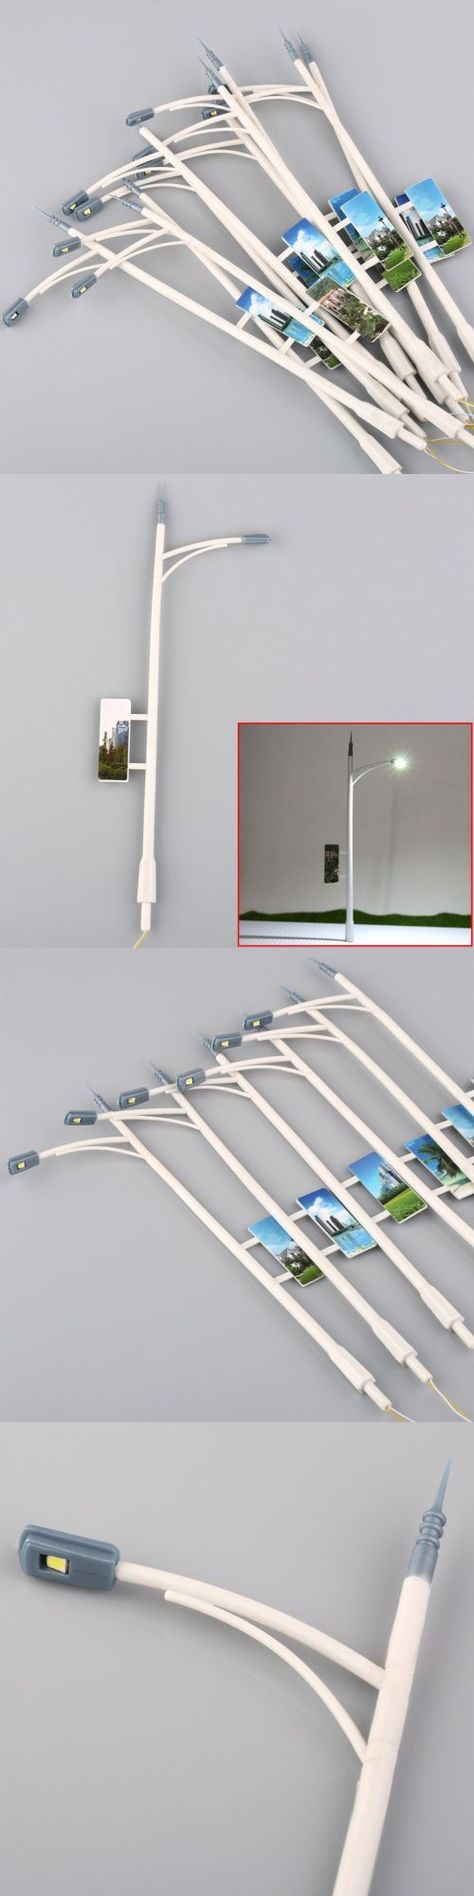 Lamps and lights 81048 10pcs o scale 150 model railway lamppost lamps street lights leds toy us buy it now only 10 69 on ebay